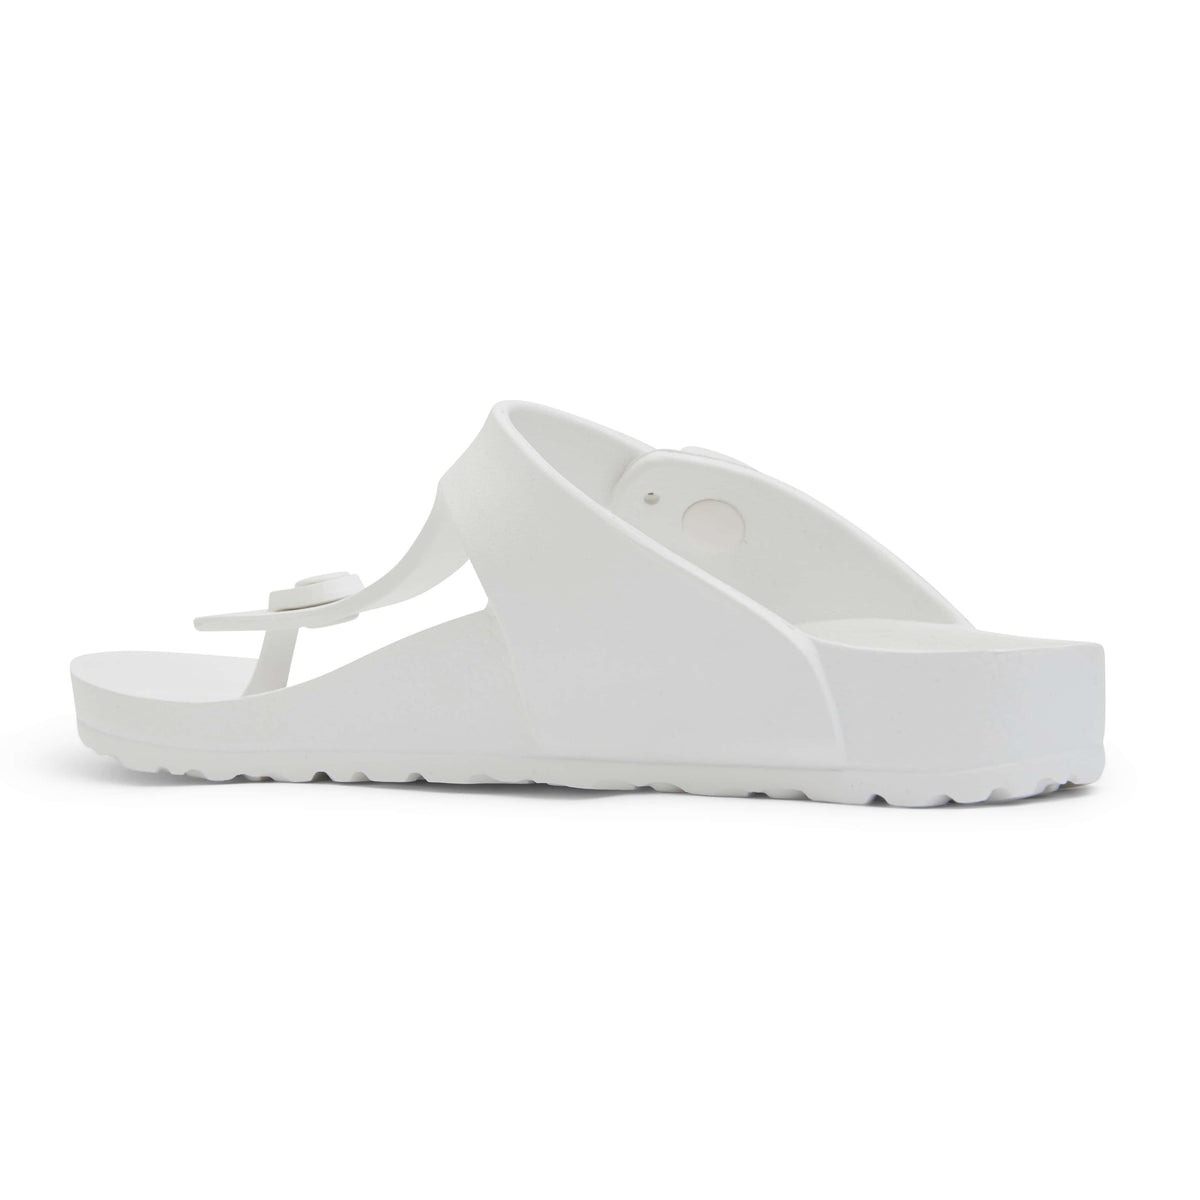 Hilda Sandal in White